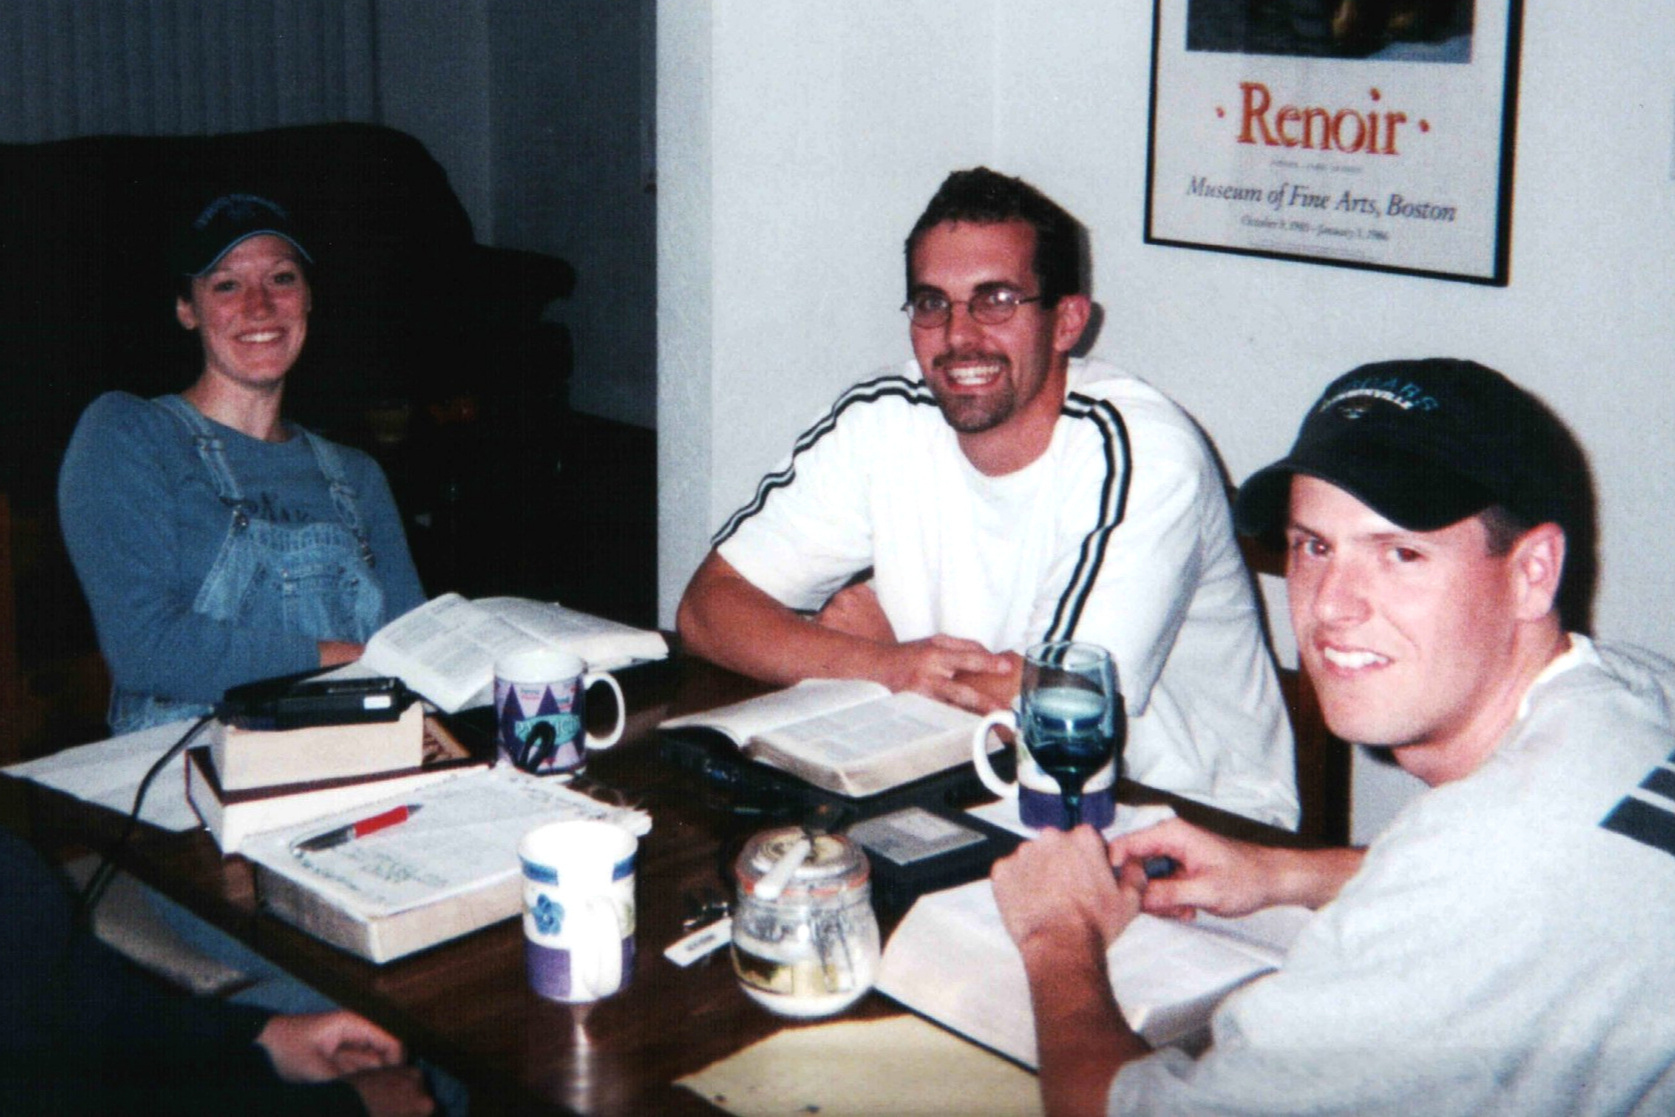 One of our many planning meetings as single co-leaders in the campus ministry in Gainesville, Florida (circa 2001). Our best days with lifelong friends!